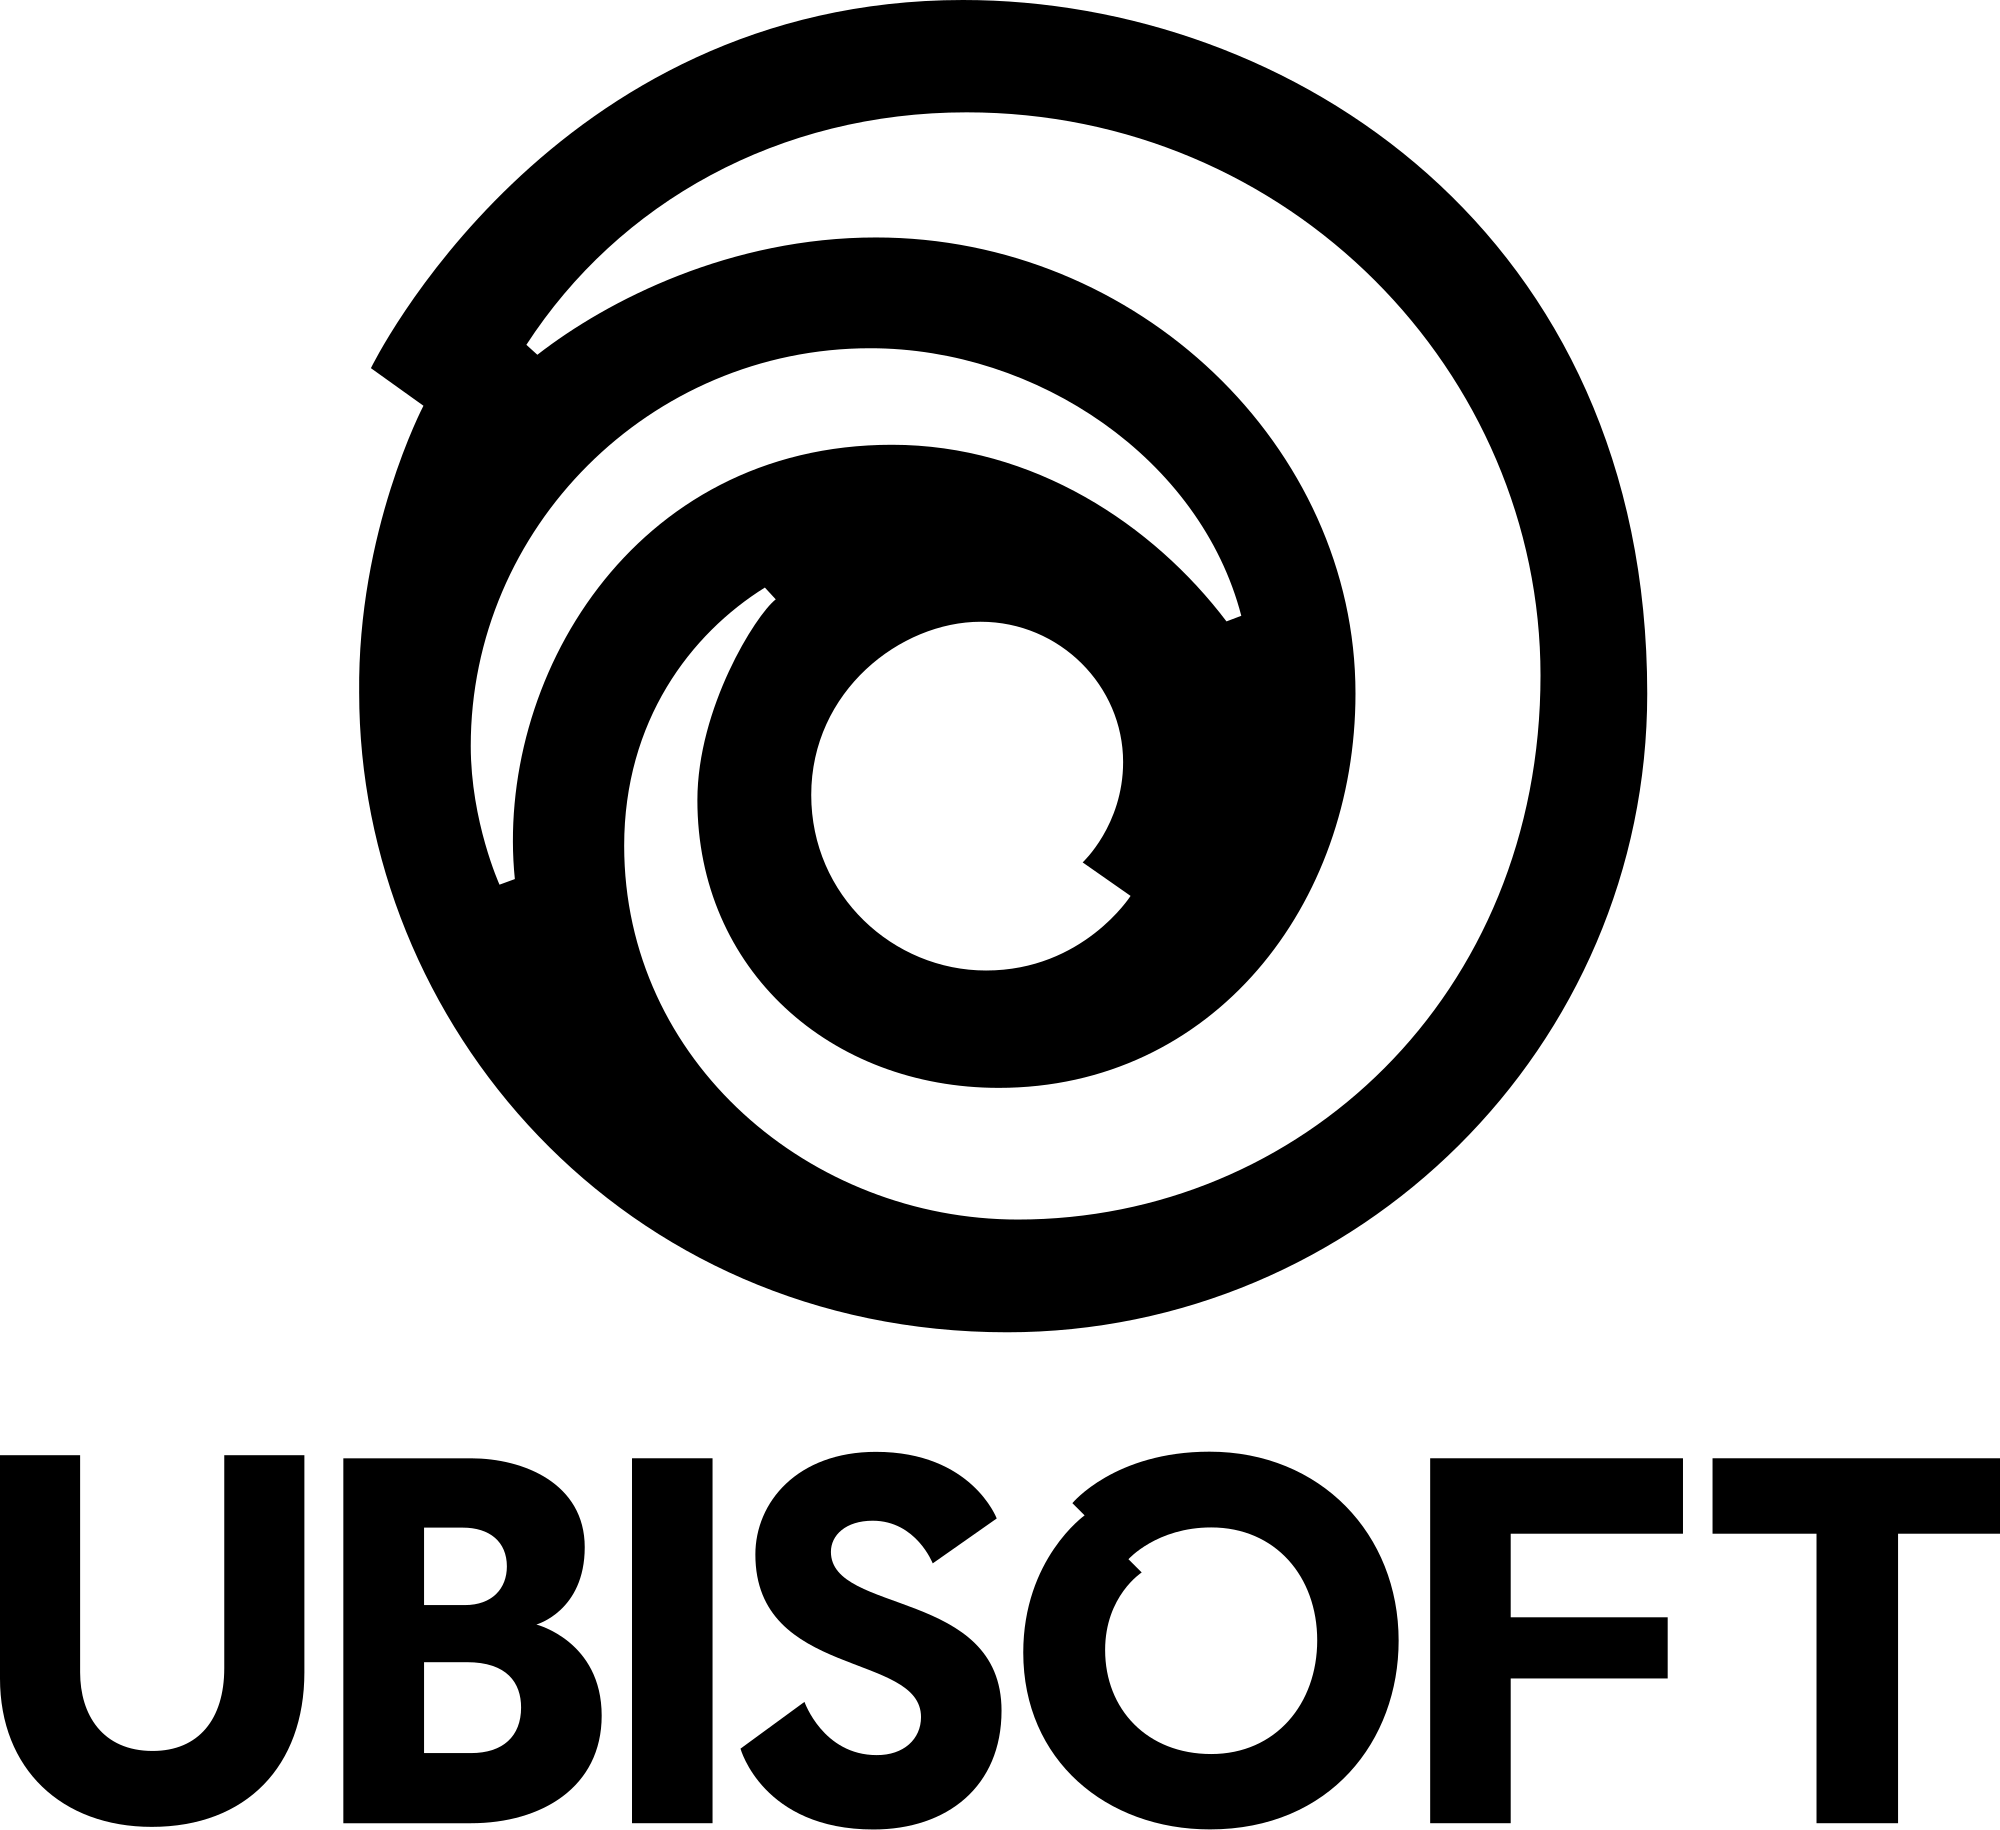 Ubisoft logo png. File svg wikimedia commons